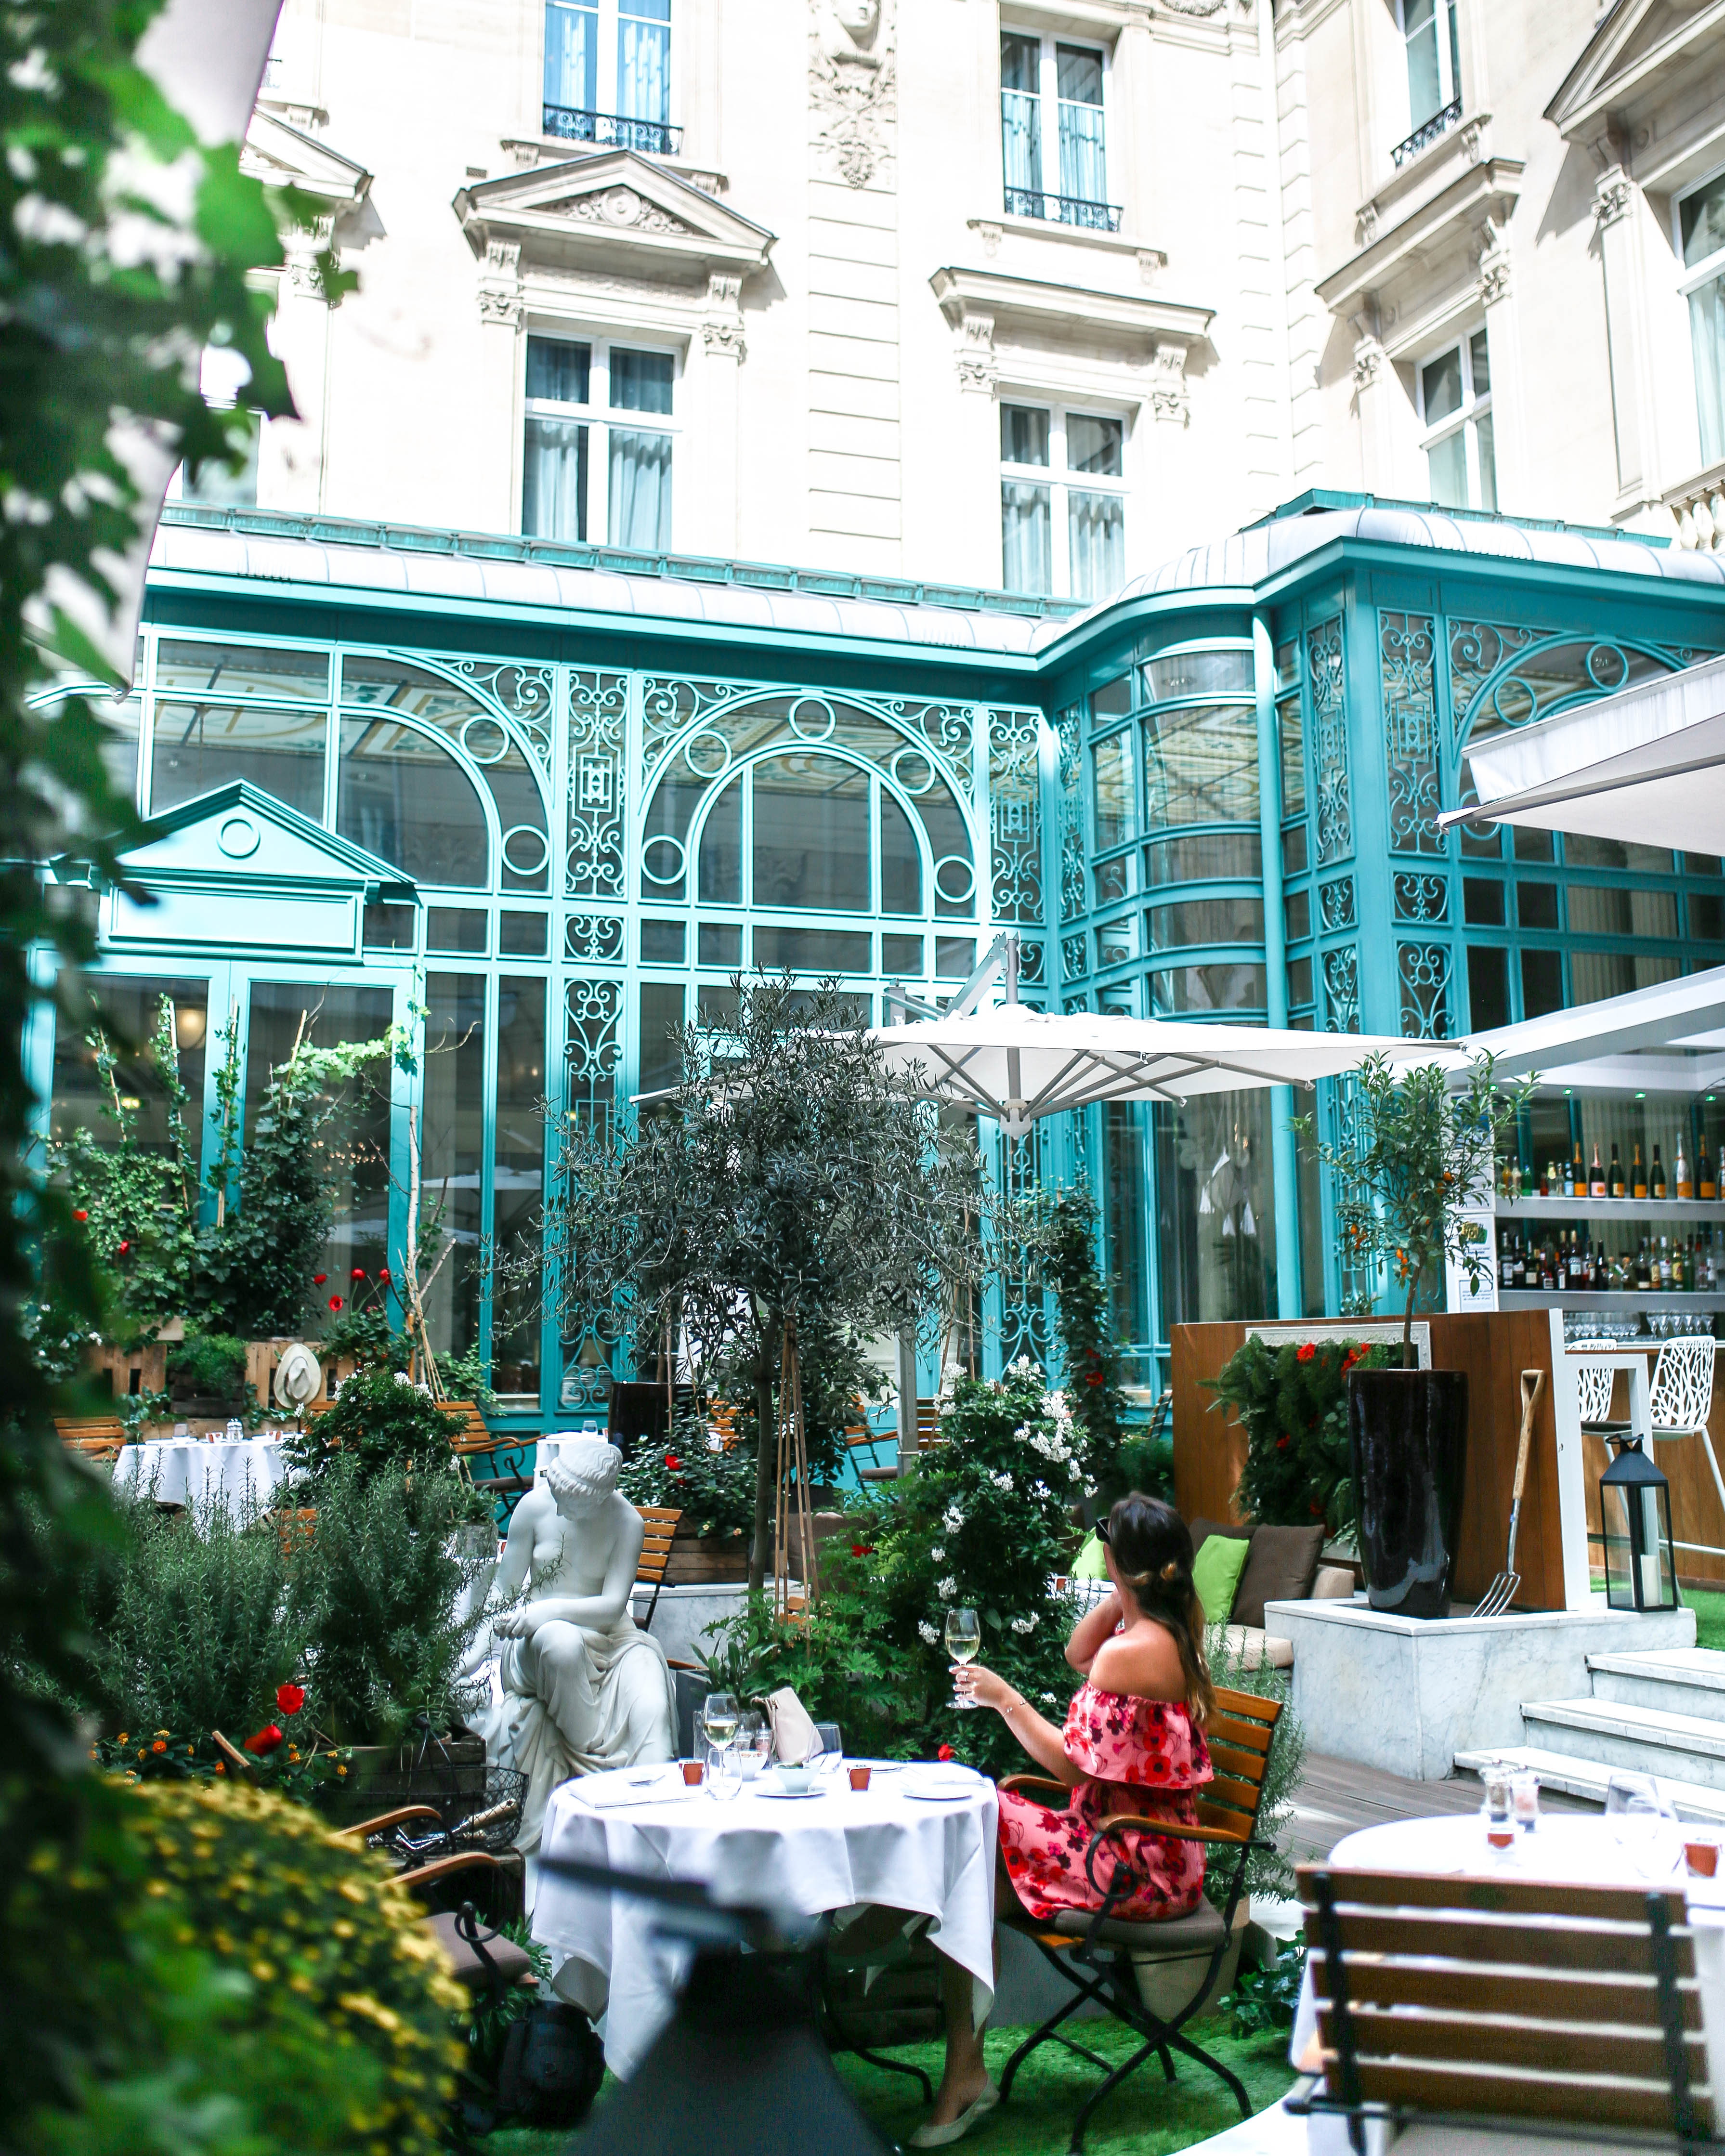 Best bistro in paris by To Vogue or Bust